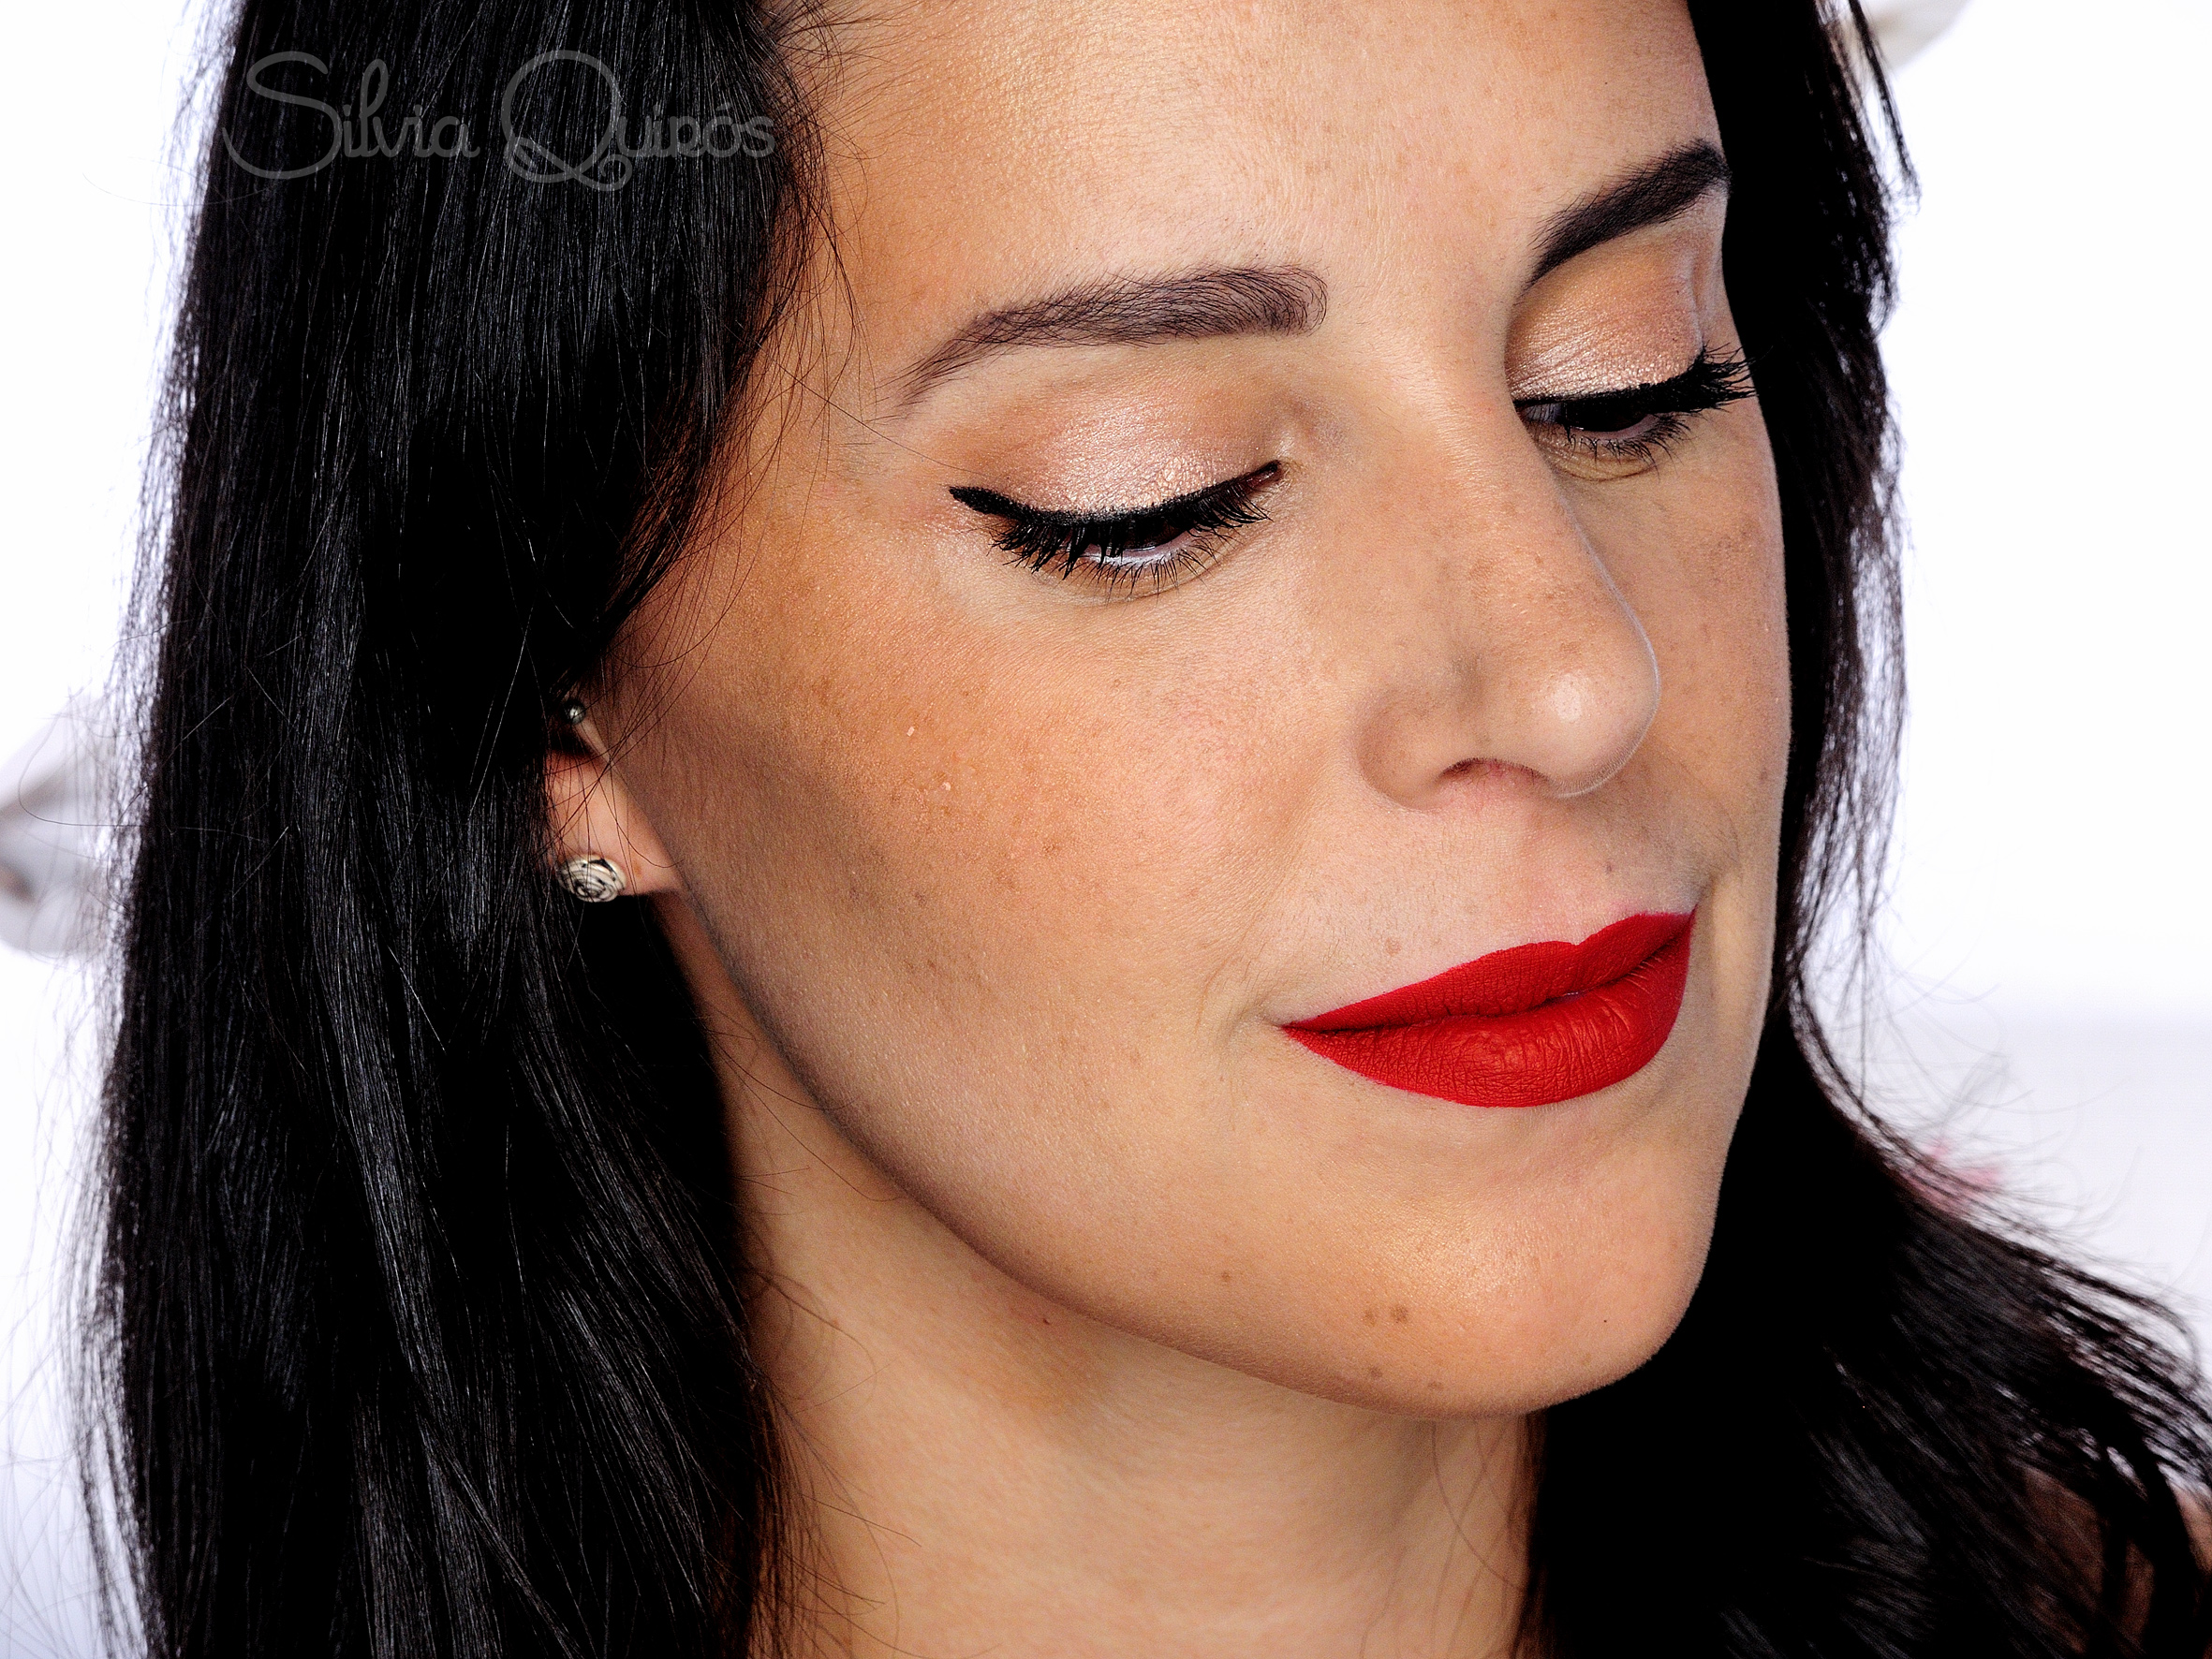 Maquillaje pin up resistente al sudor silvia quir s - Maquillage pin up ...